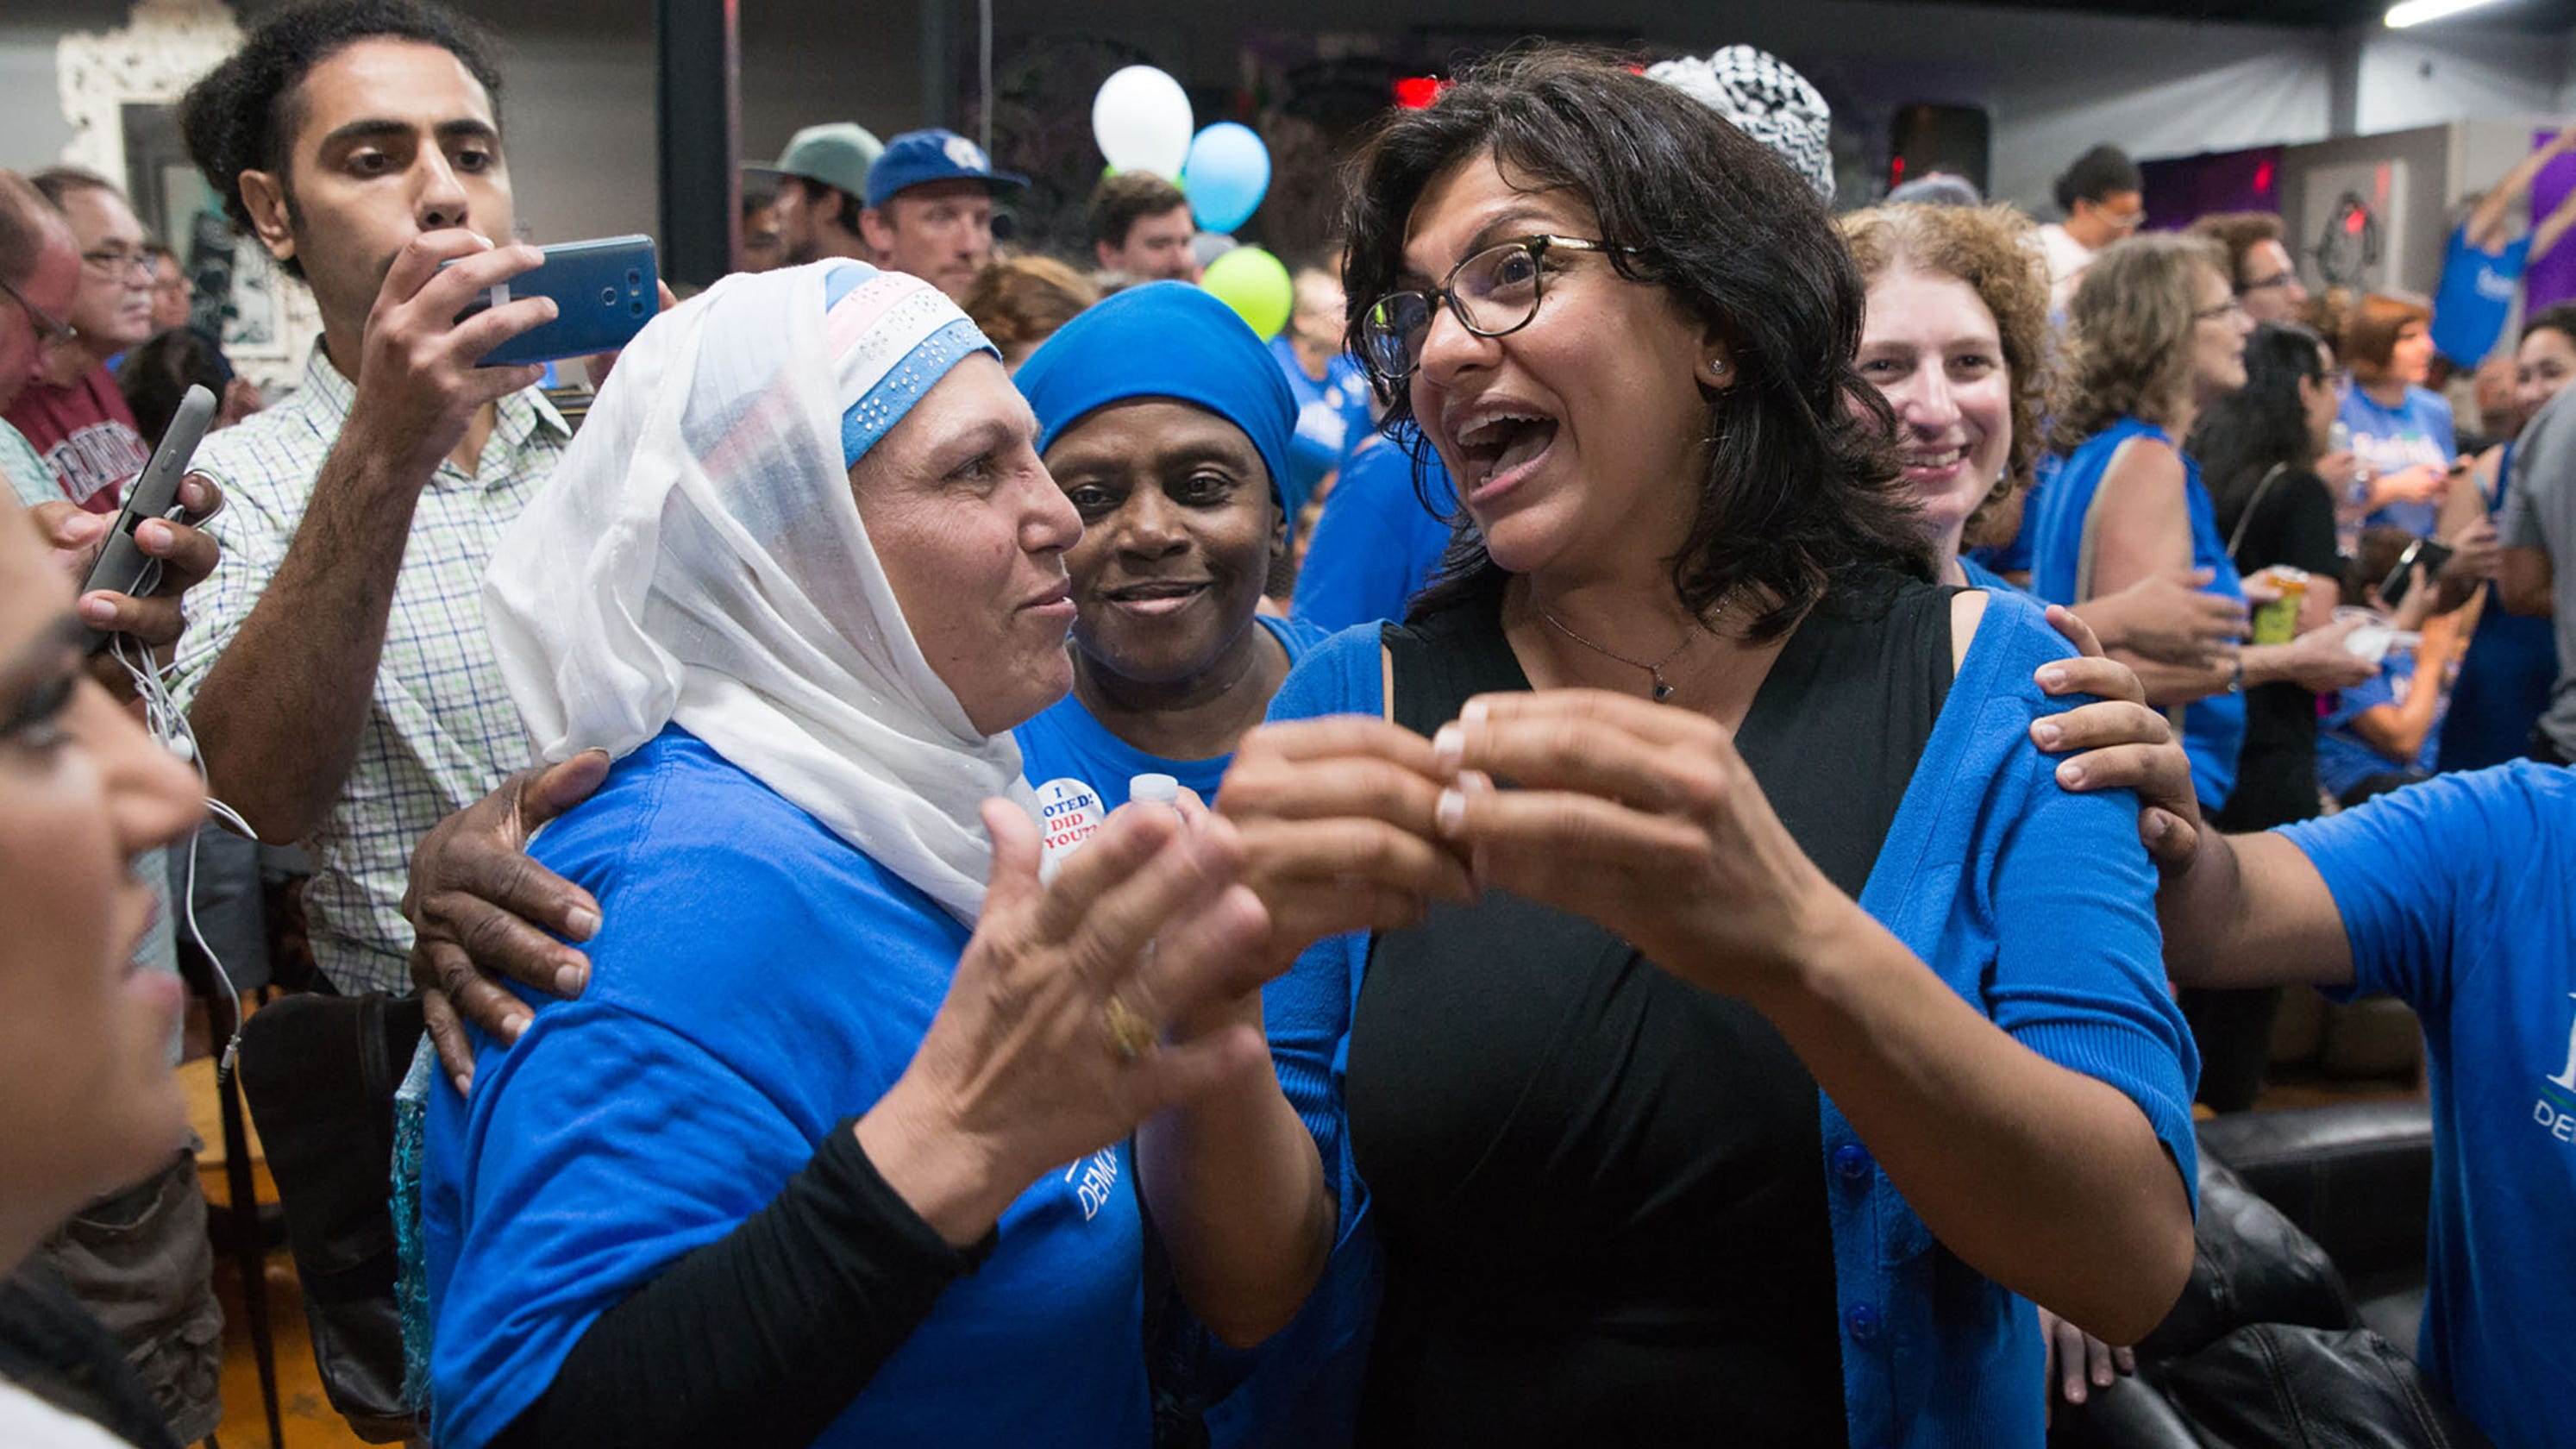 Muslim congresswoman Rashida Tlaib to use Koran for ceremony